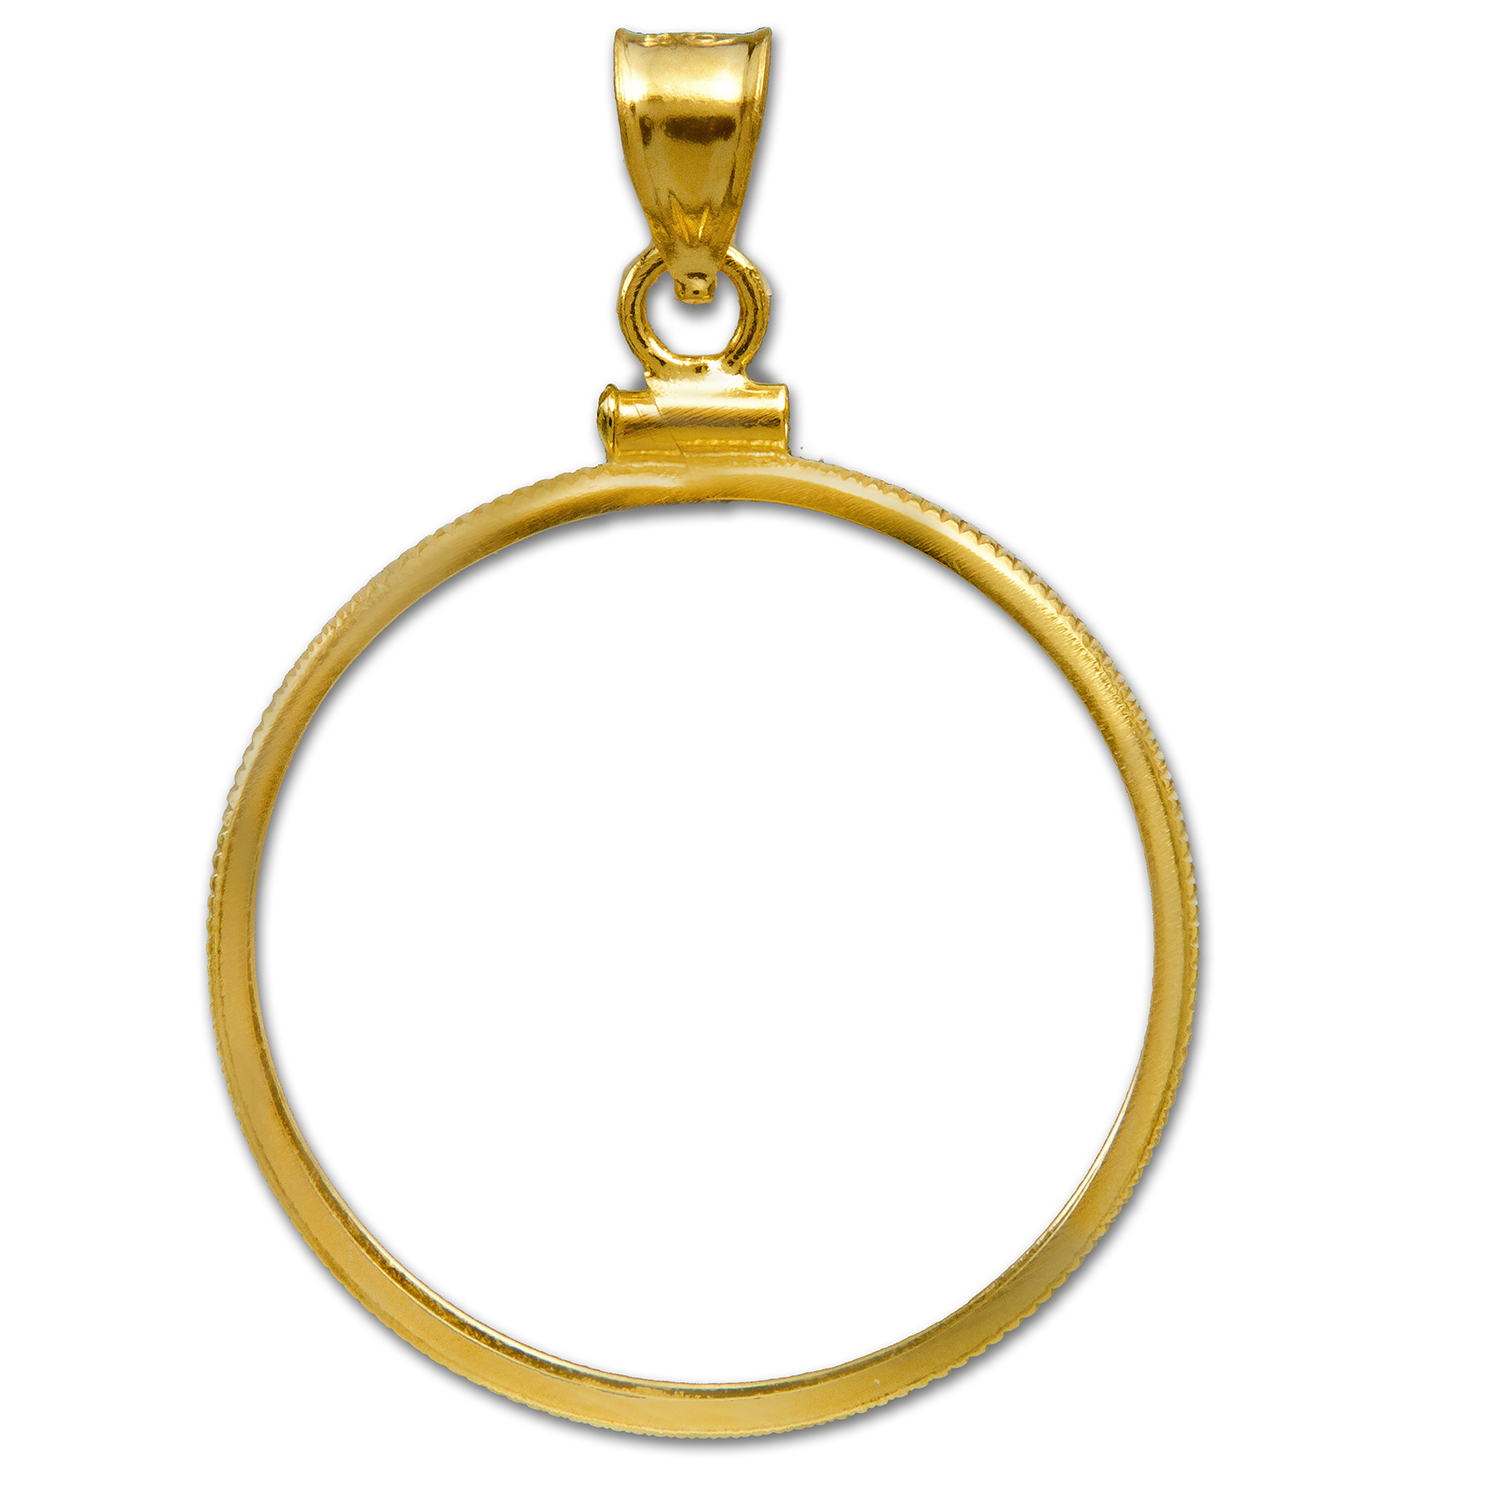 14K Gold Screw-Top Plain-Front Coin Bezel for $10 U.S. Gold Coins